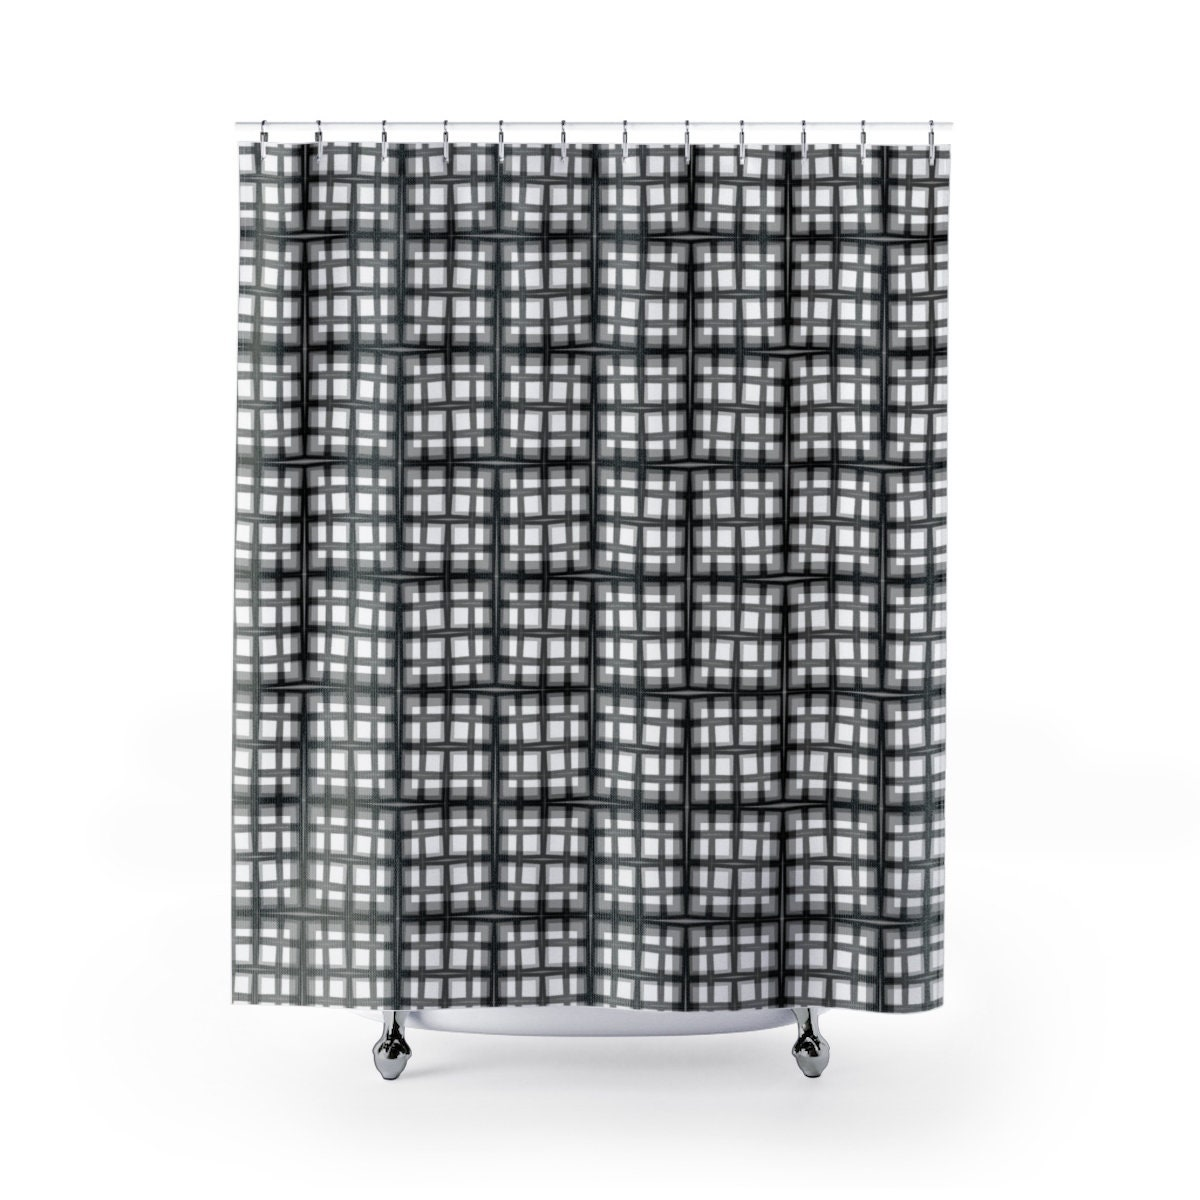 Chopped Plaid Cloth Shower Curtains A Classic With A Twist Classy Unique Pattern Is Suggestive Of Windows Perfect For Any Bathroom